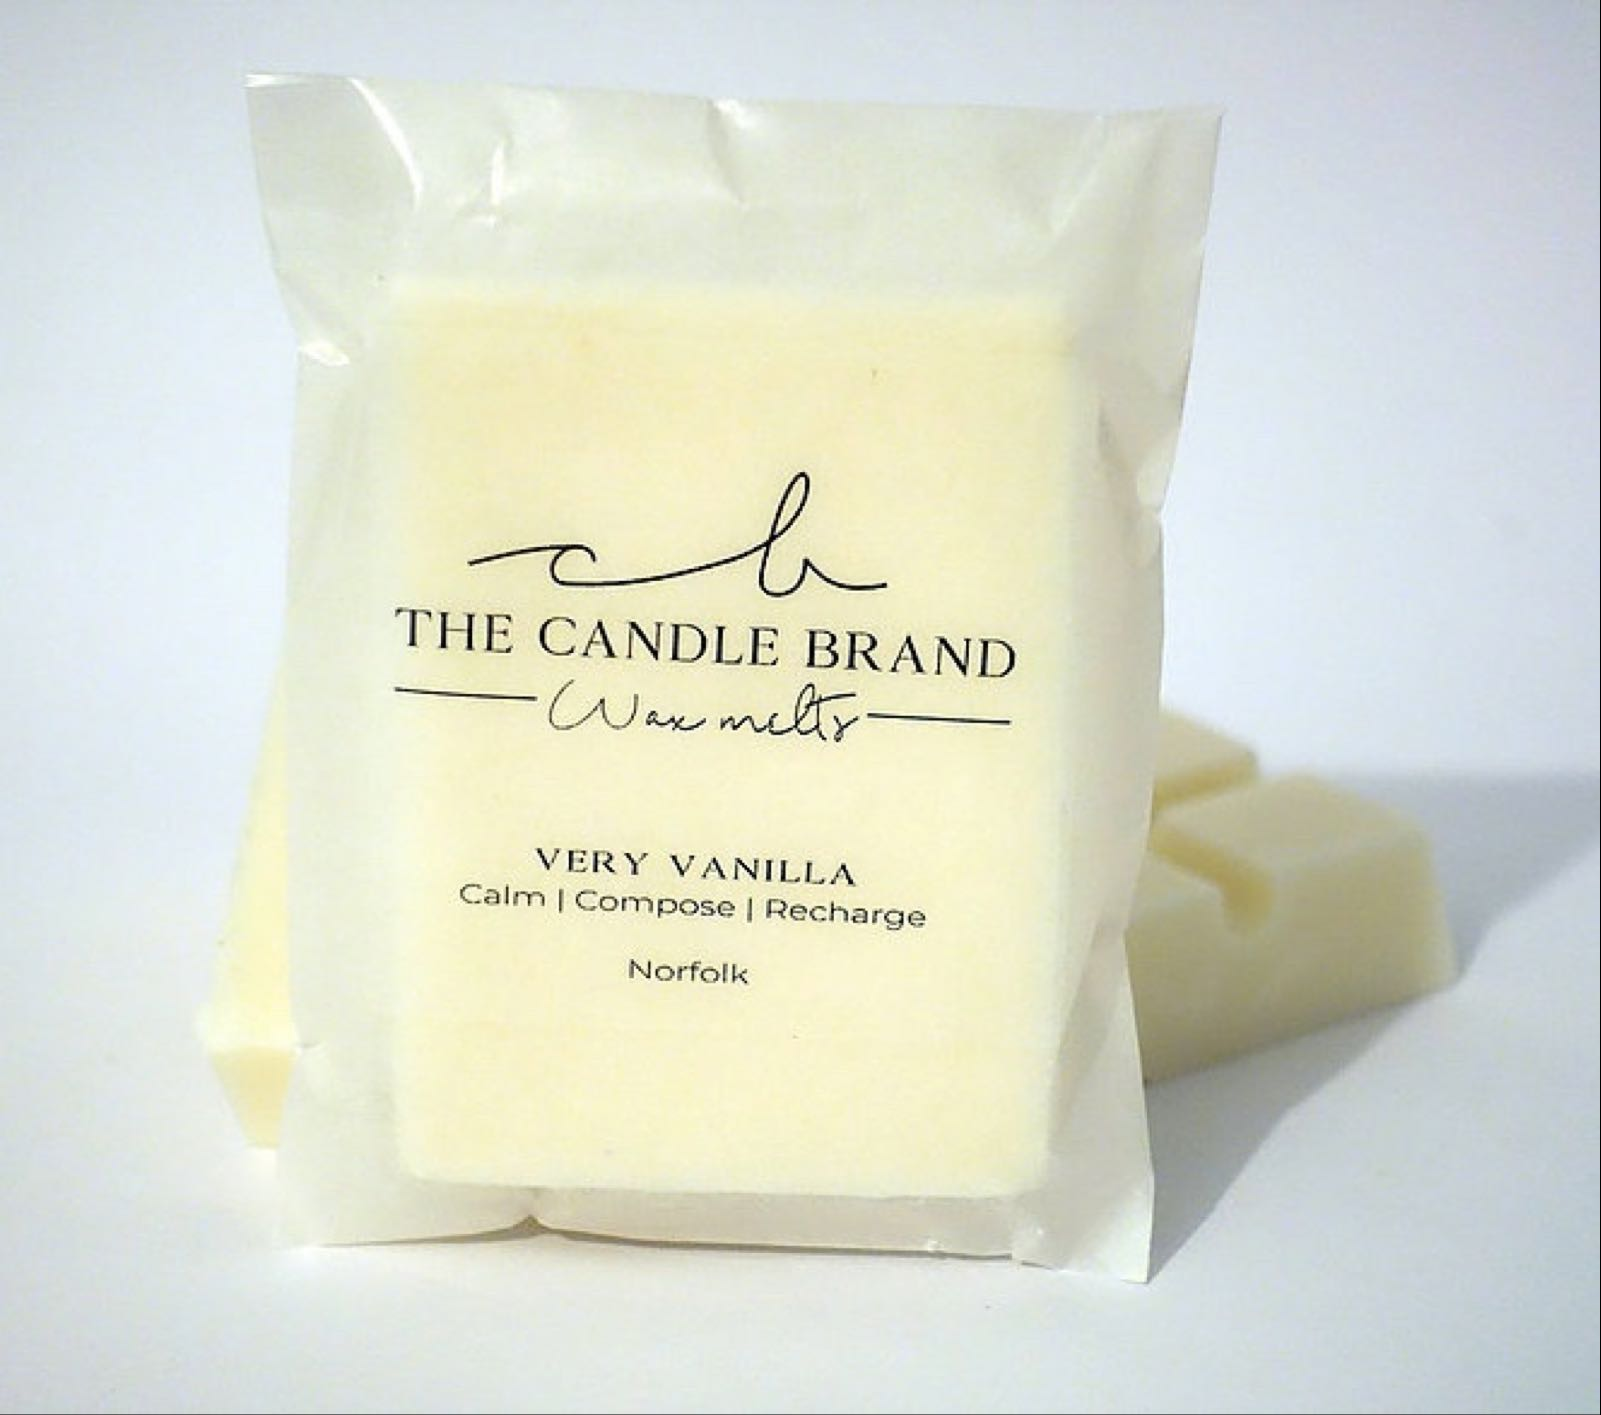 Very Vanilla Wax Melts by The Candle Brand